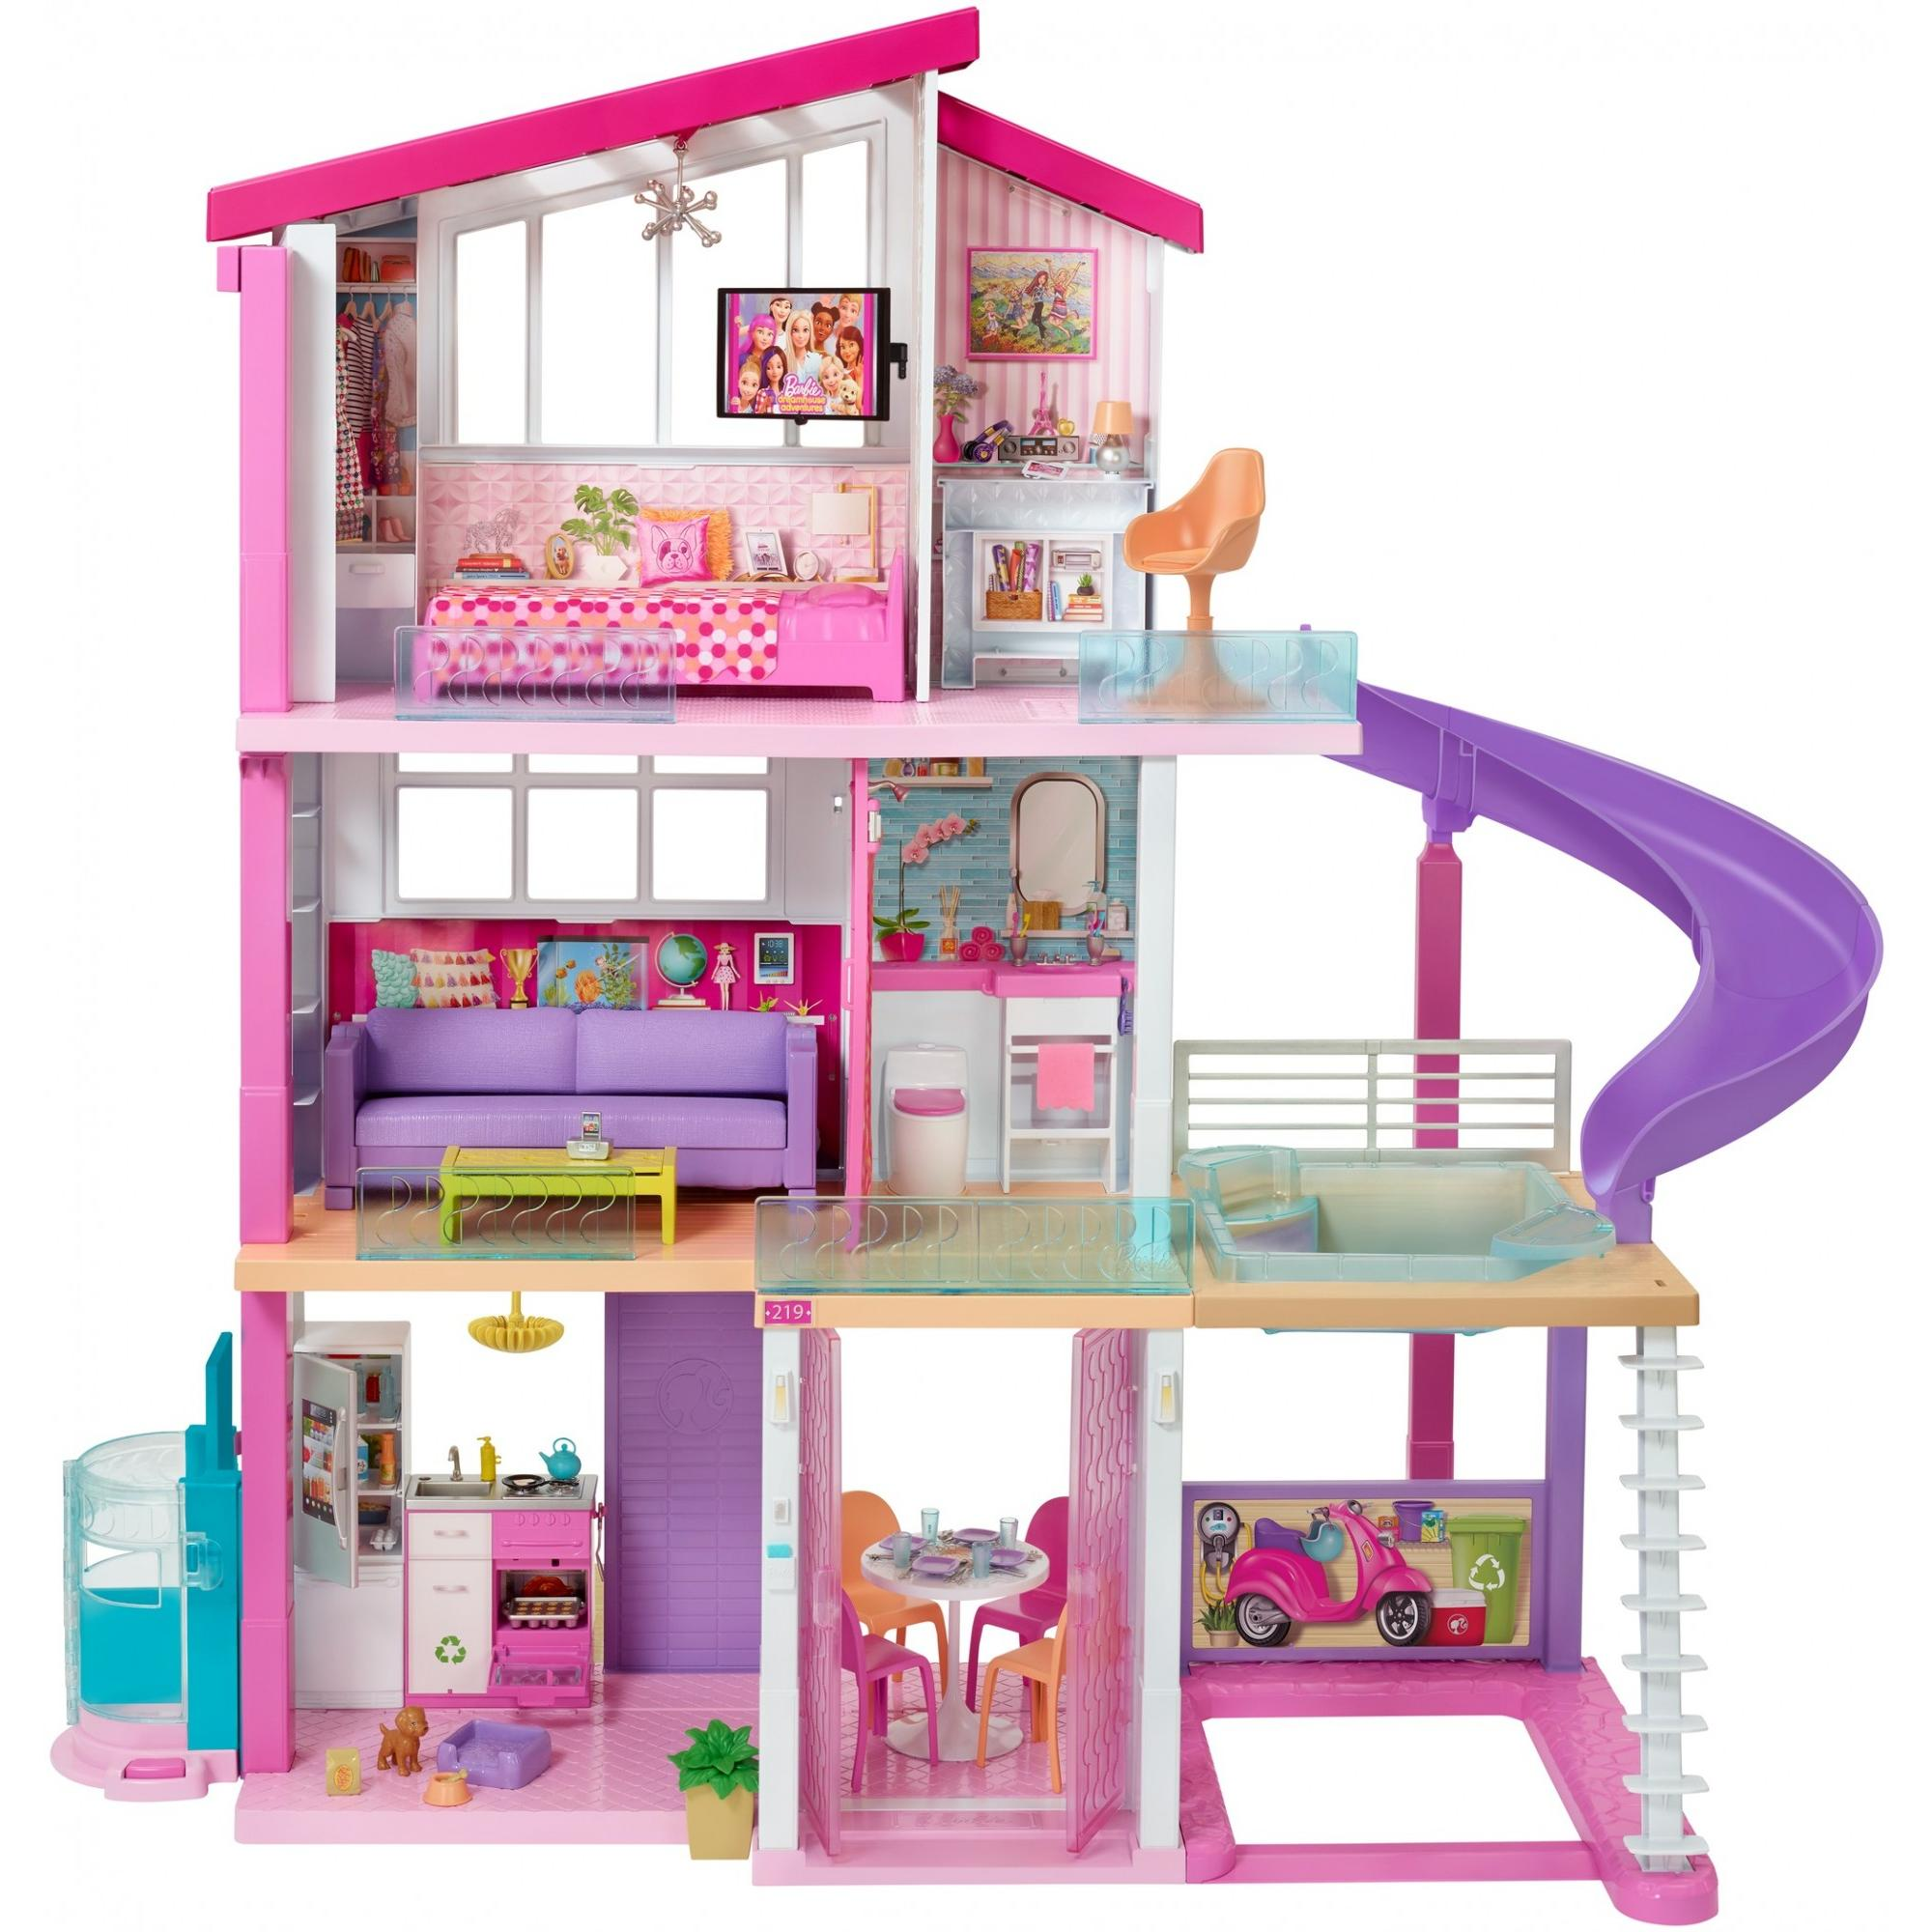 New Barbie DreamHouse Playset with 70+ Accessory Pieces by Mattel